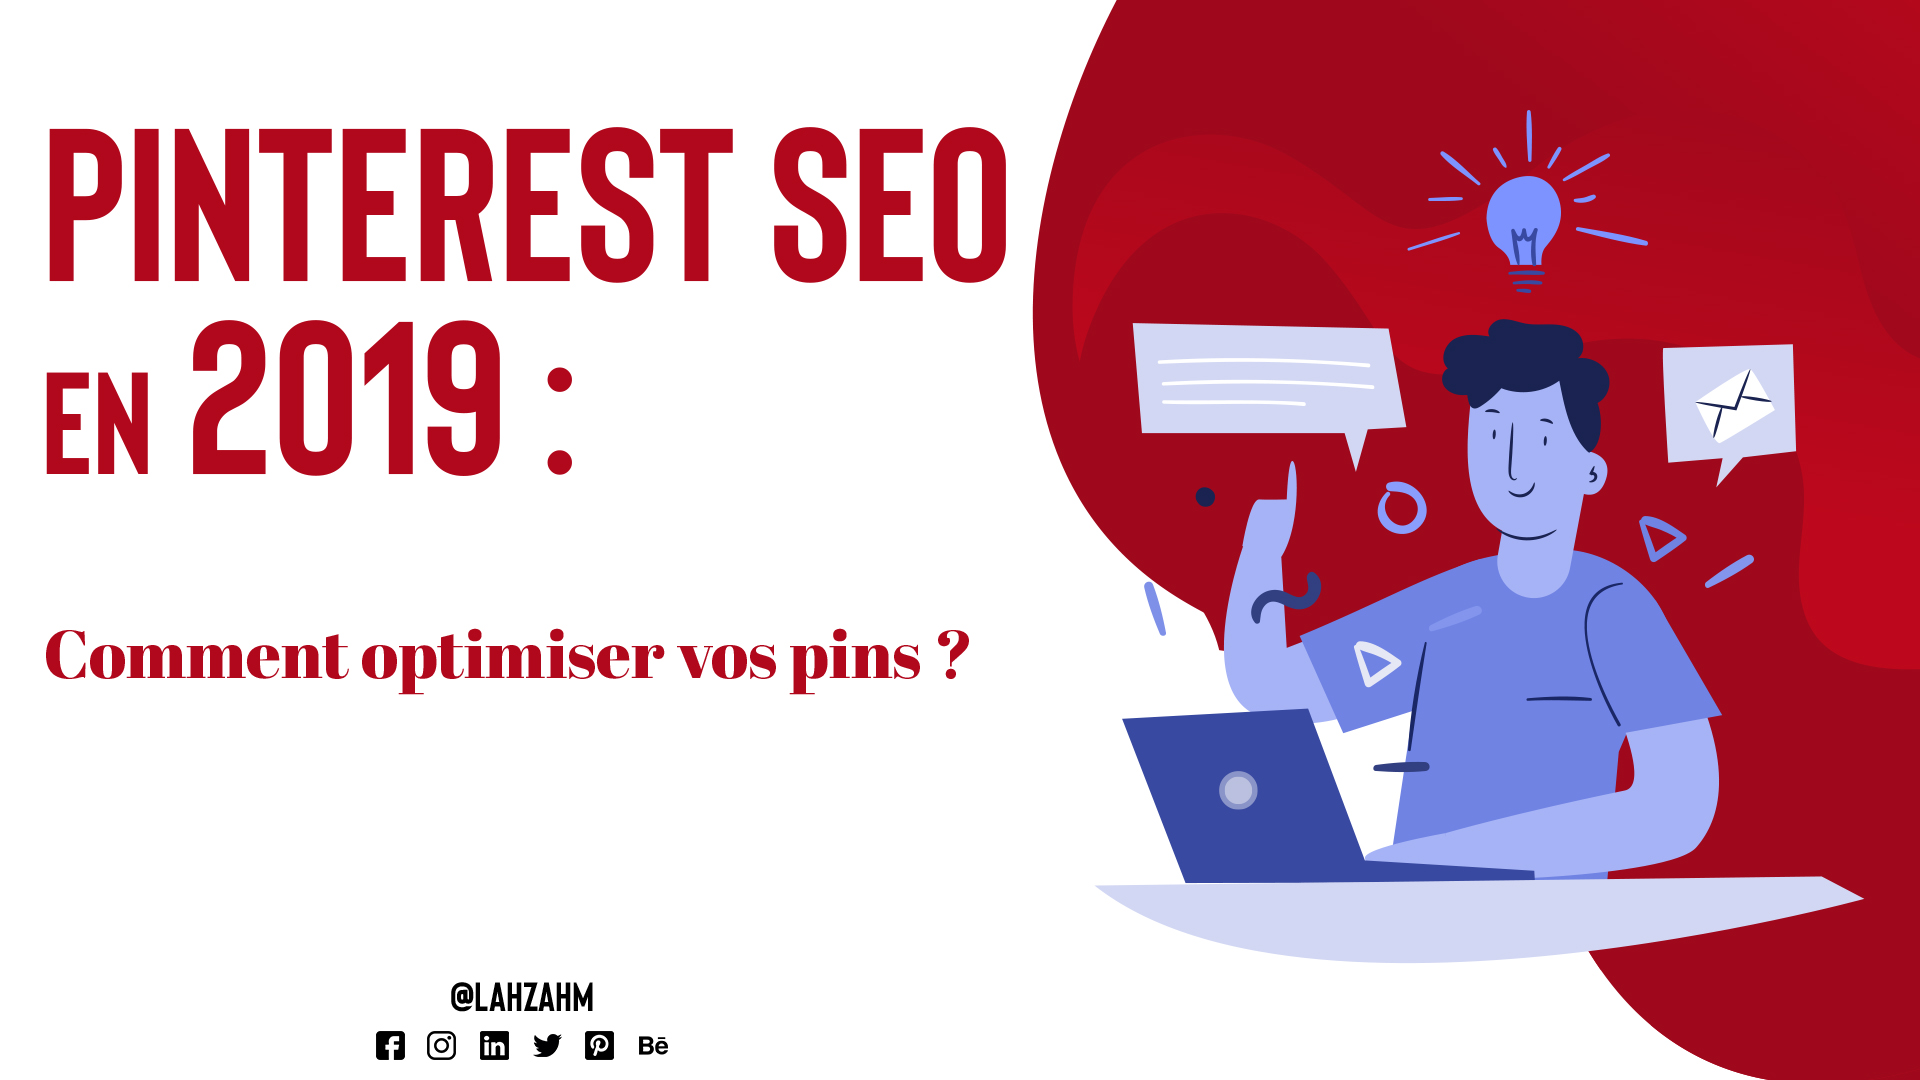 Pinterest SEO en 2019: Comment optimiser vos pins ?